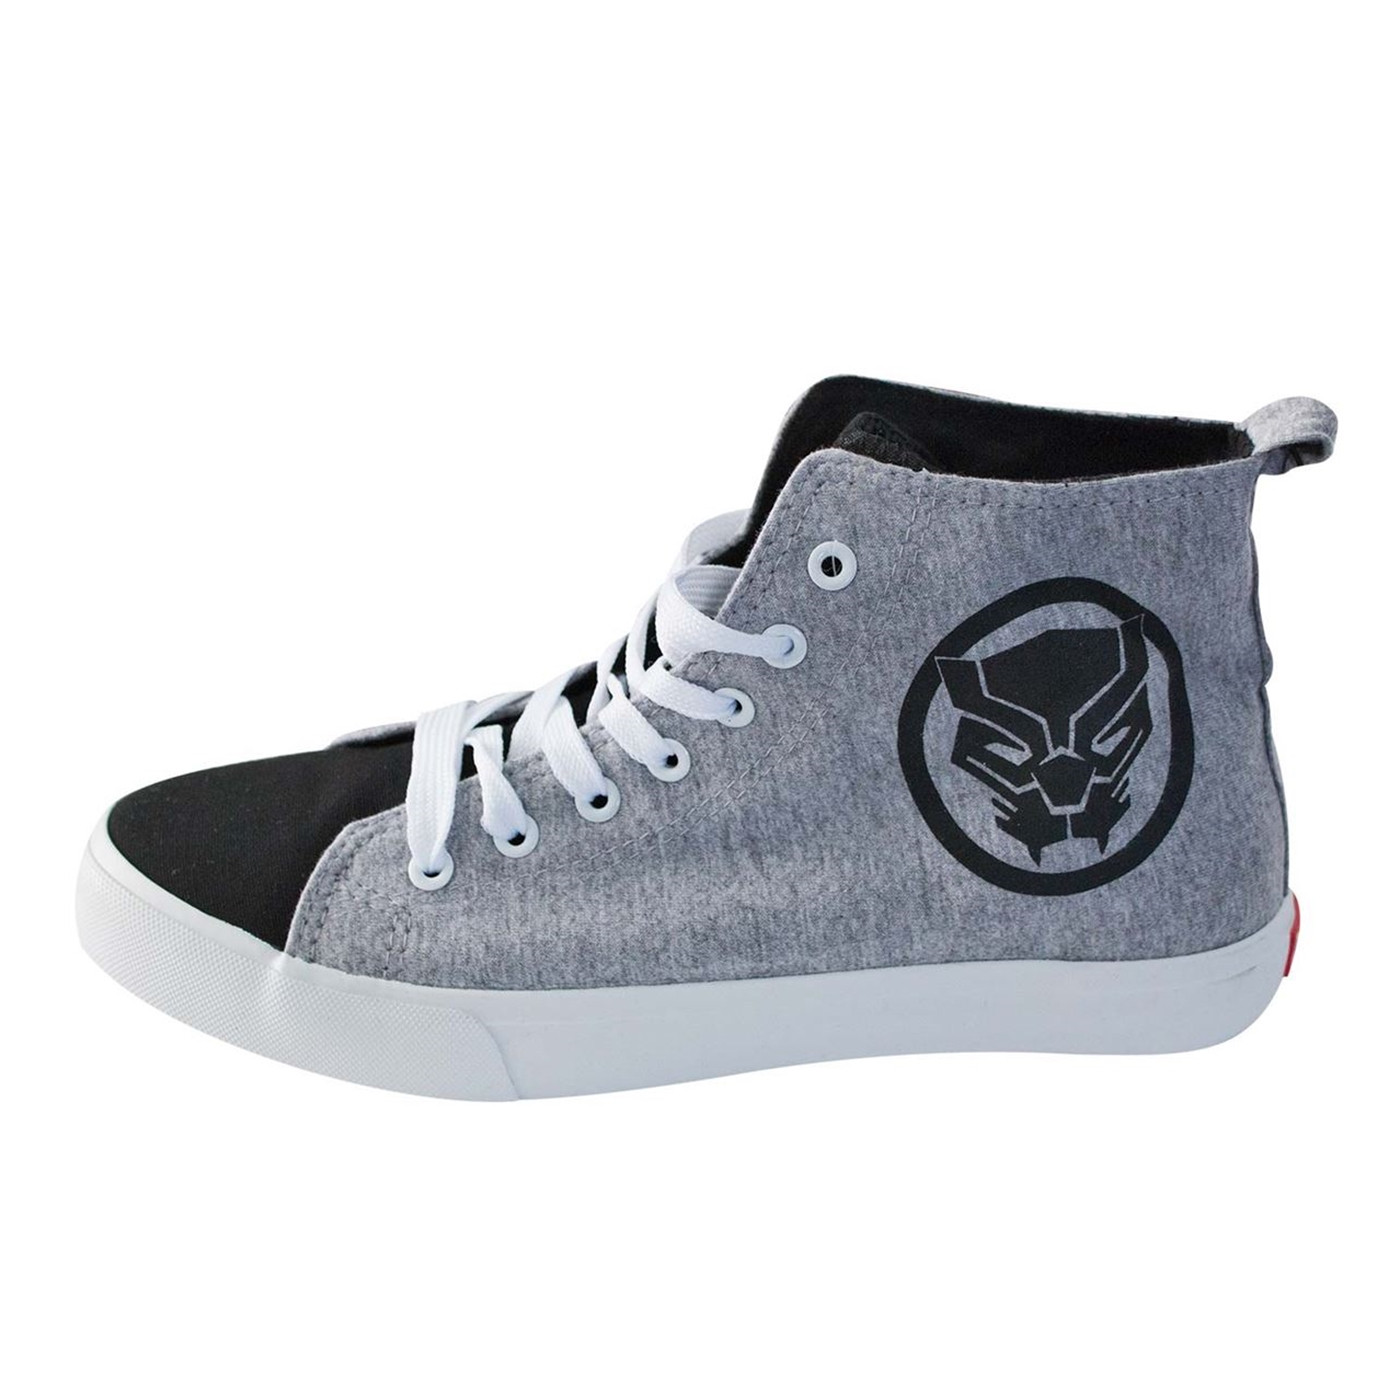 Black Panther Gray Sneakers